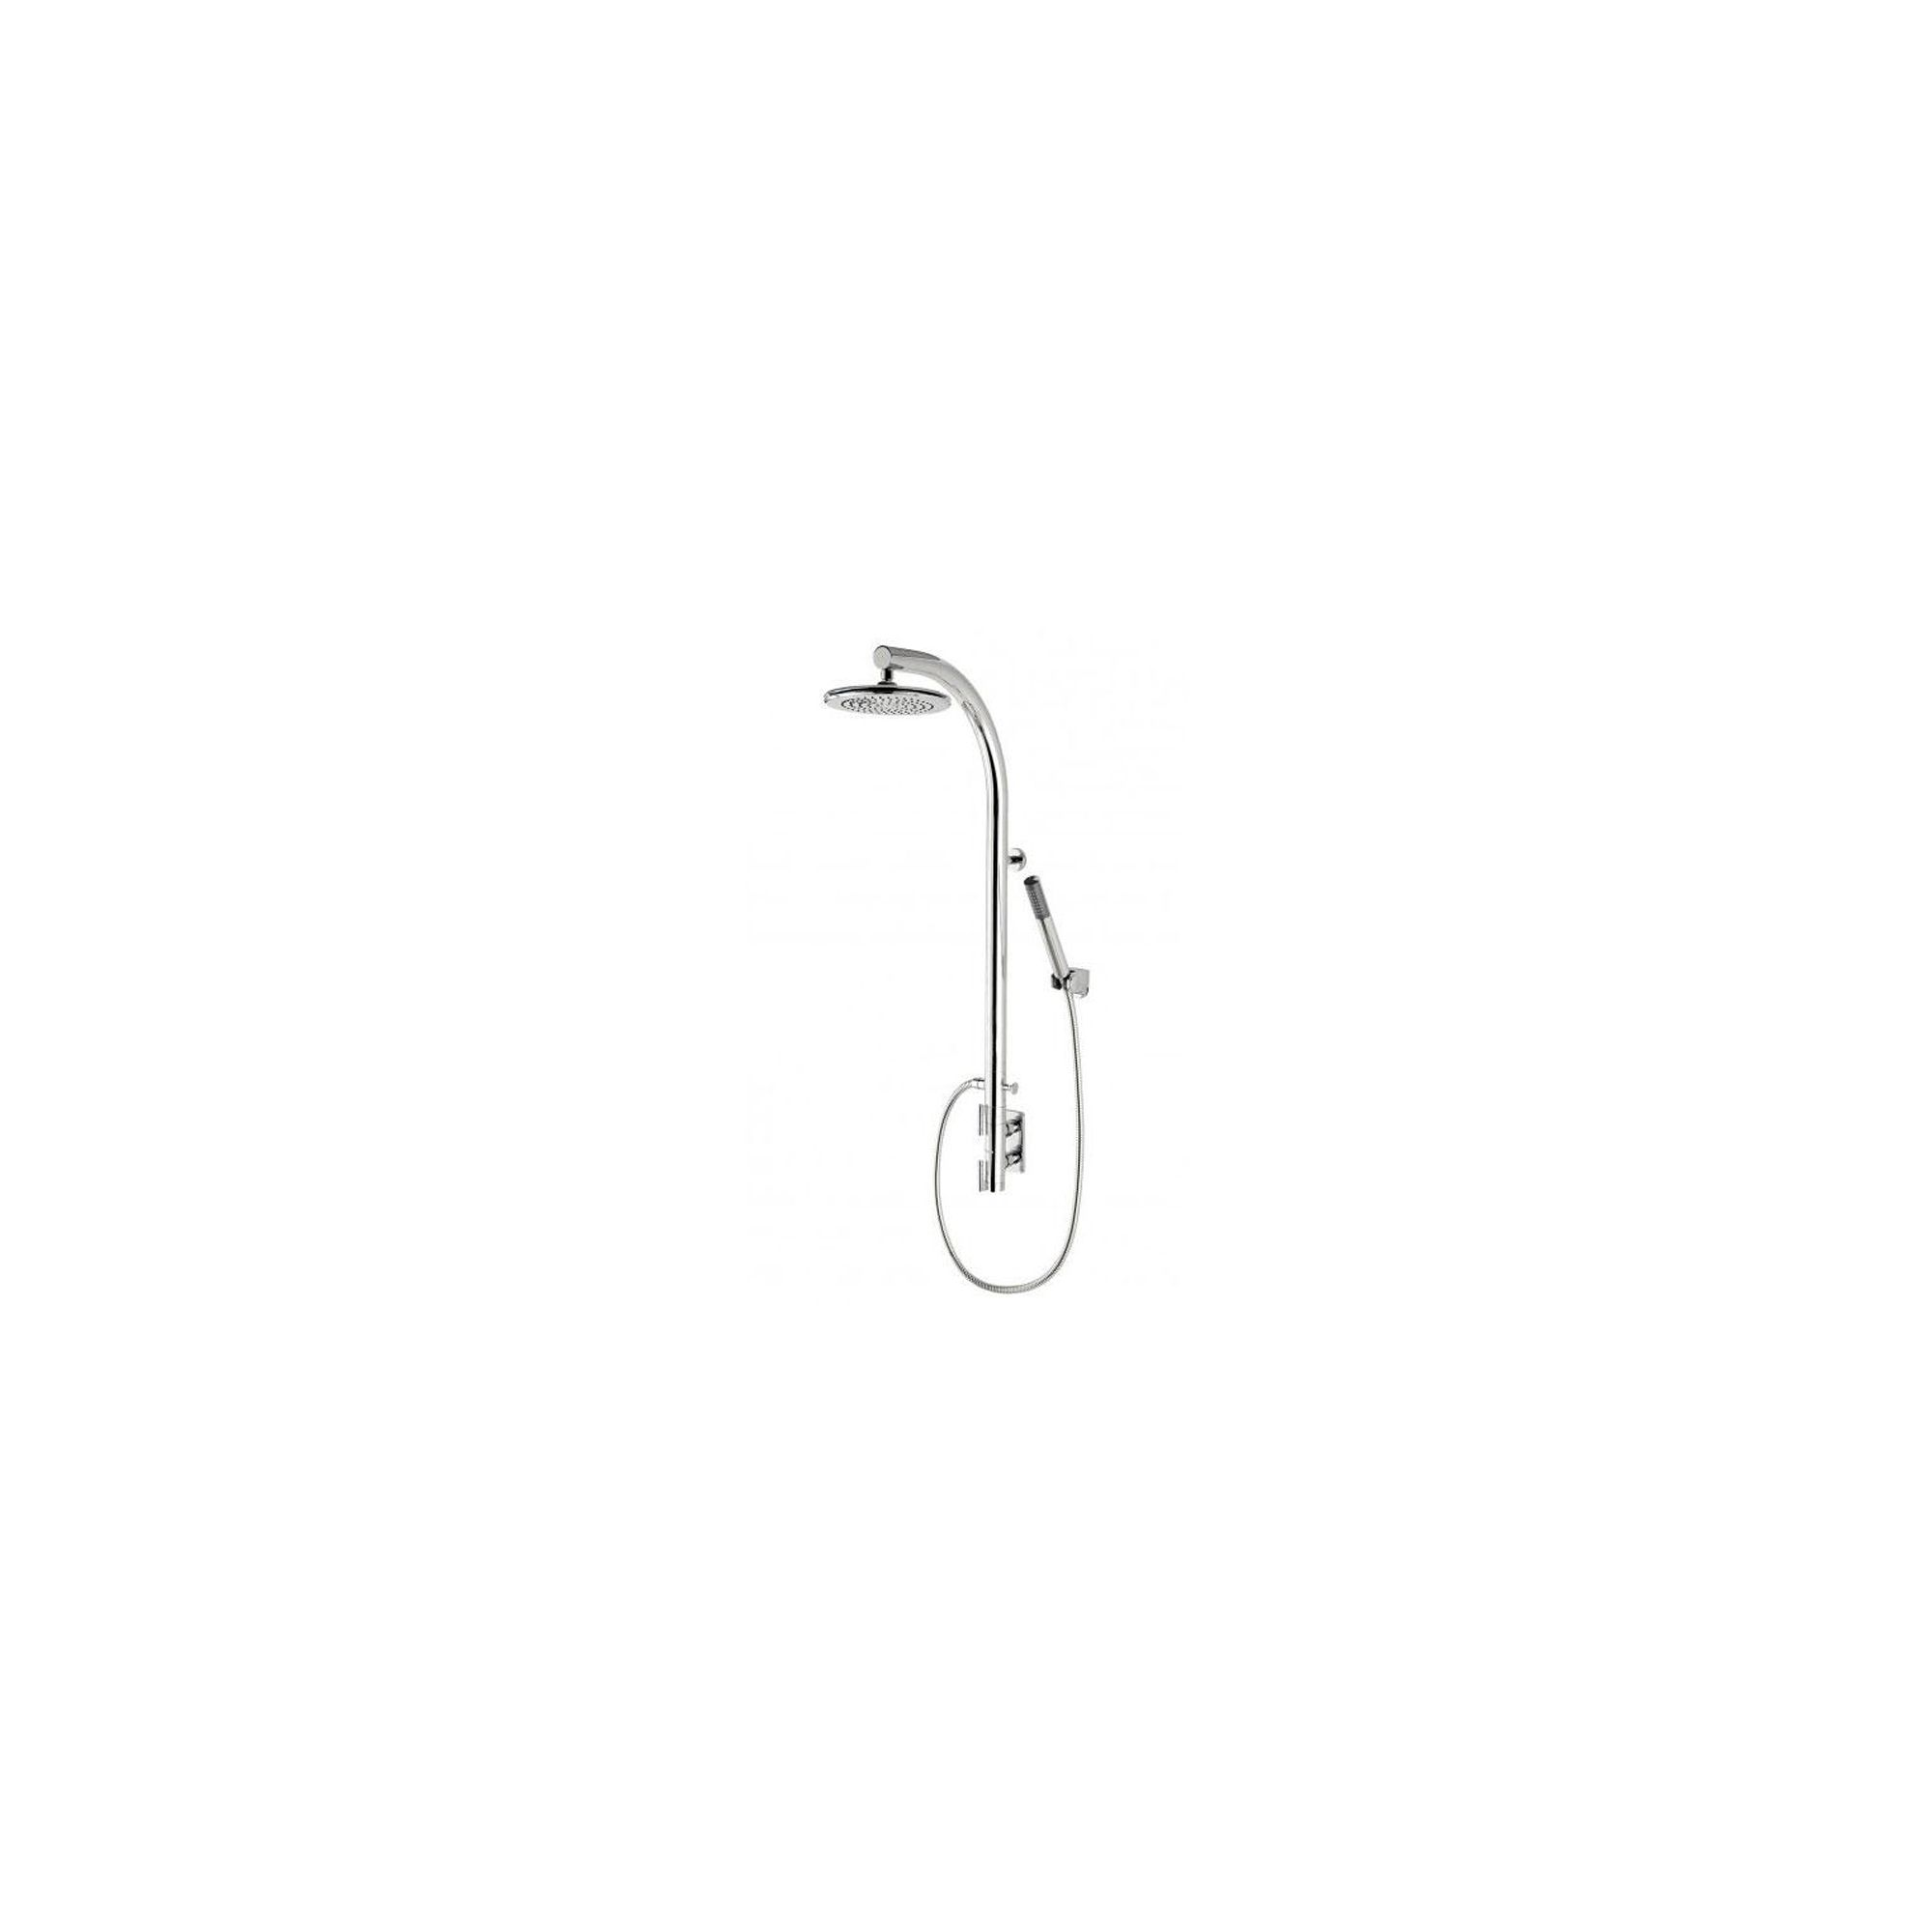 Triton Thames Vertical Thermostatic Mixer Shower Pole Chrome at Tescos Direct